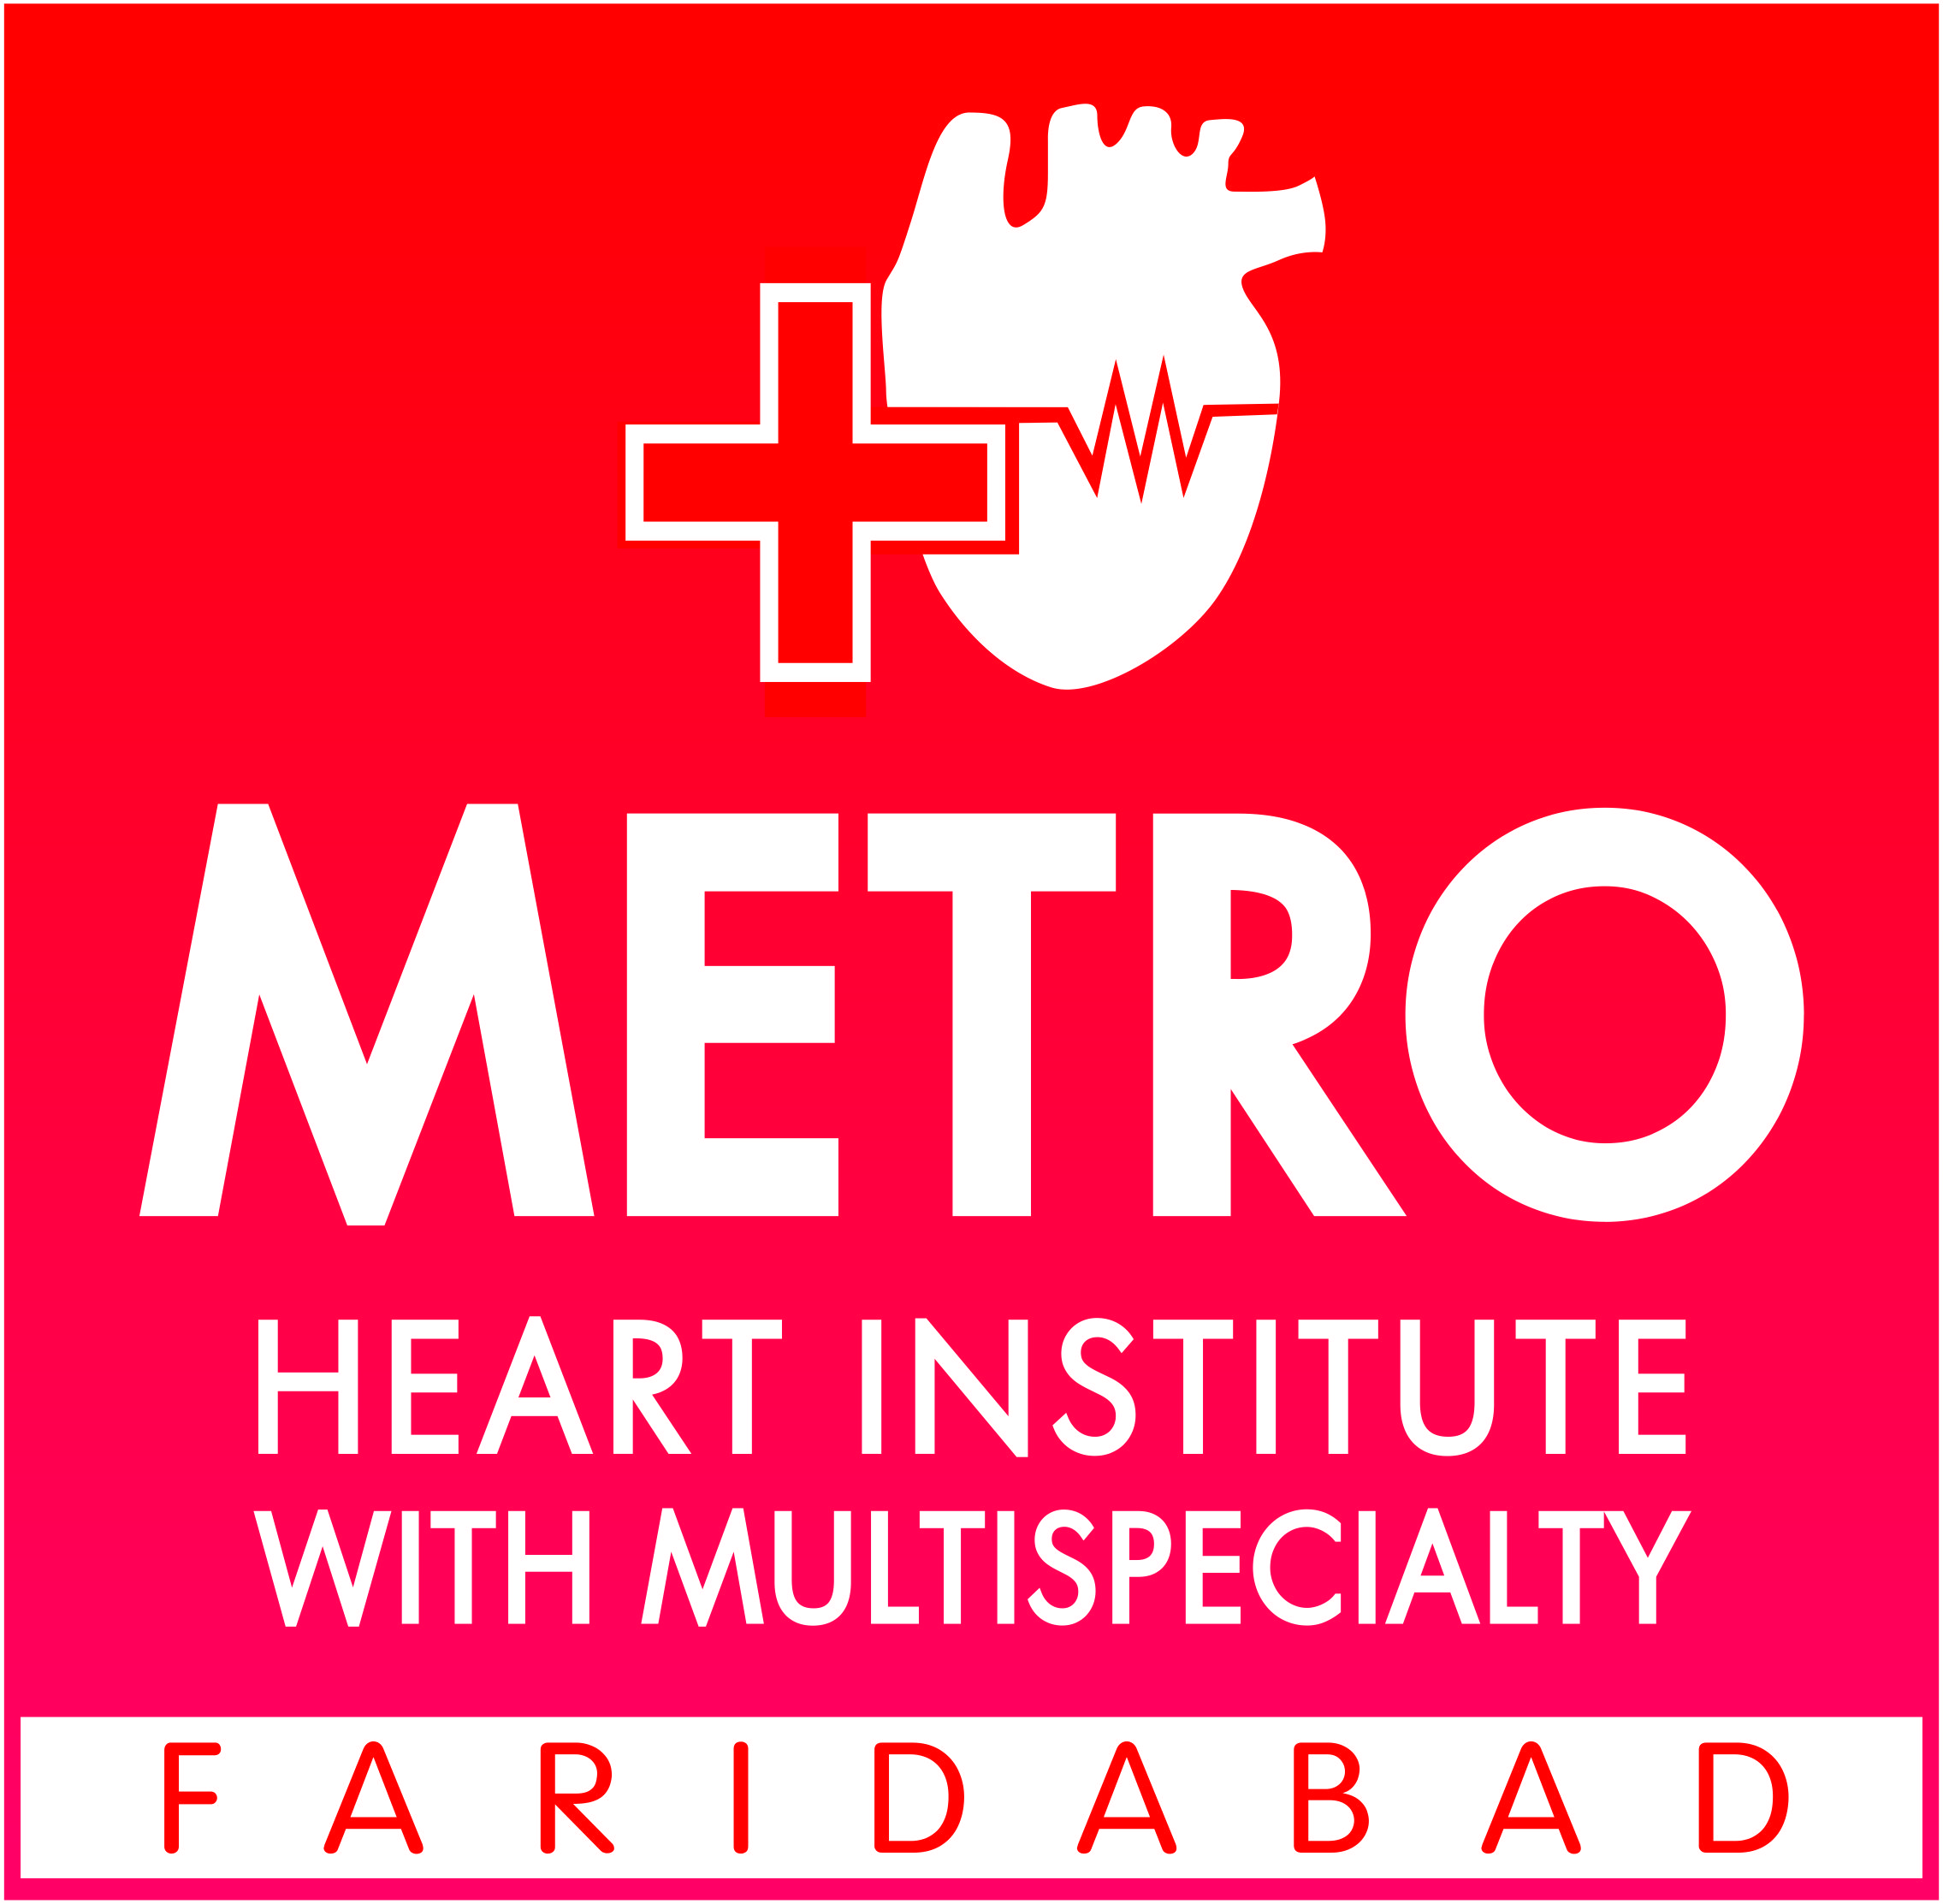 Metro Hospital And Heart Institute - Sector 16a - Faridabad Image